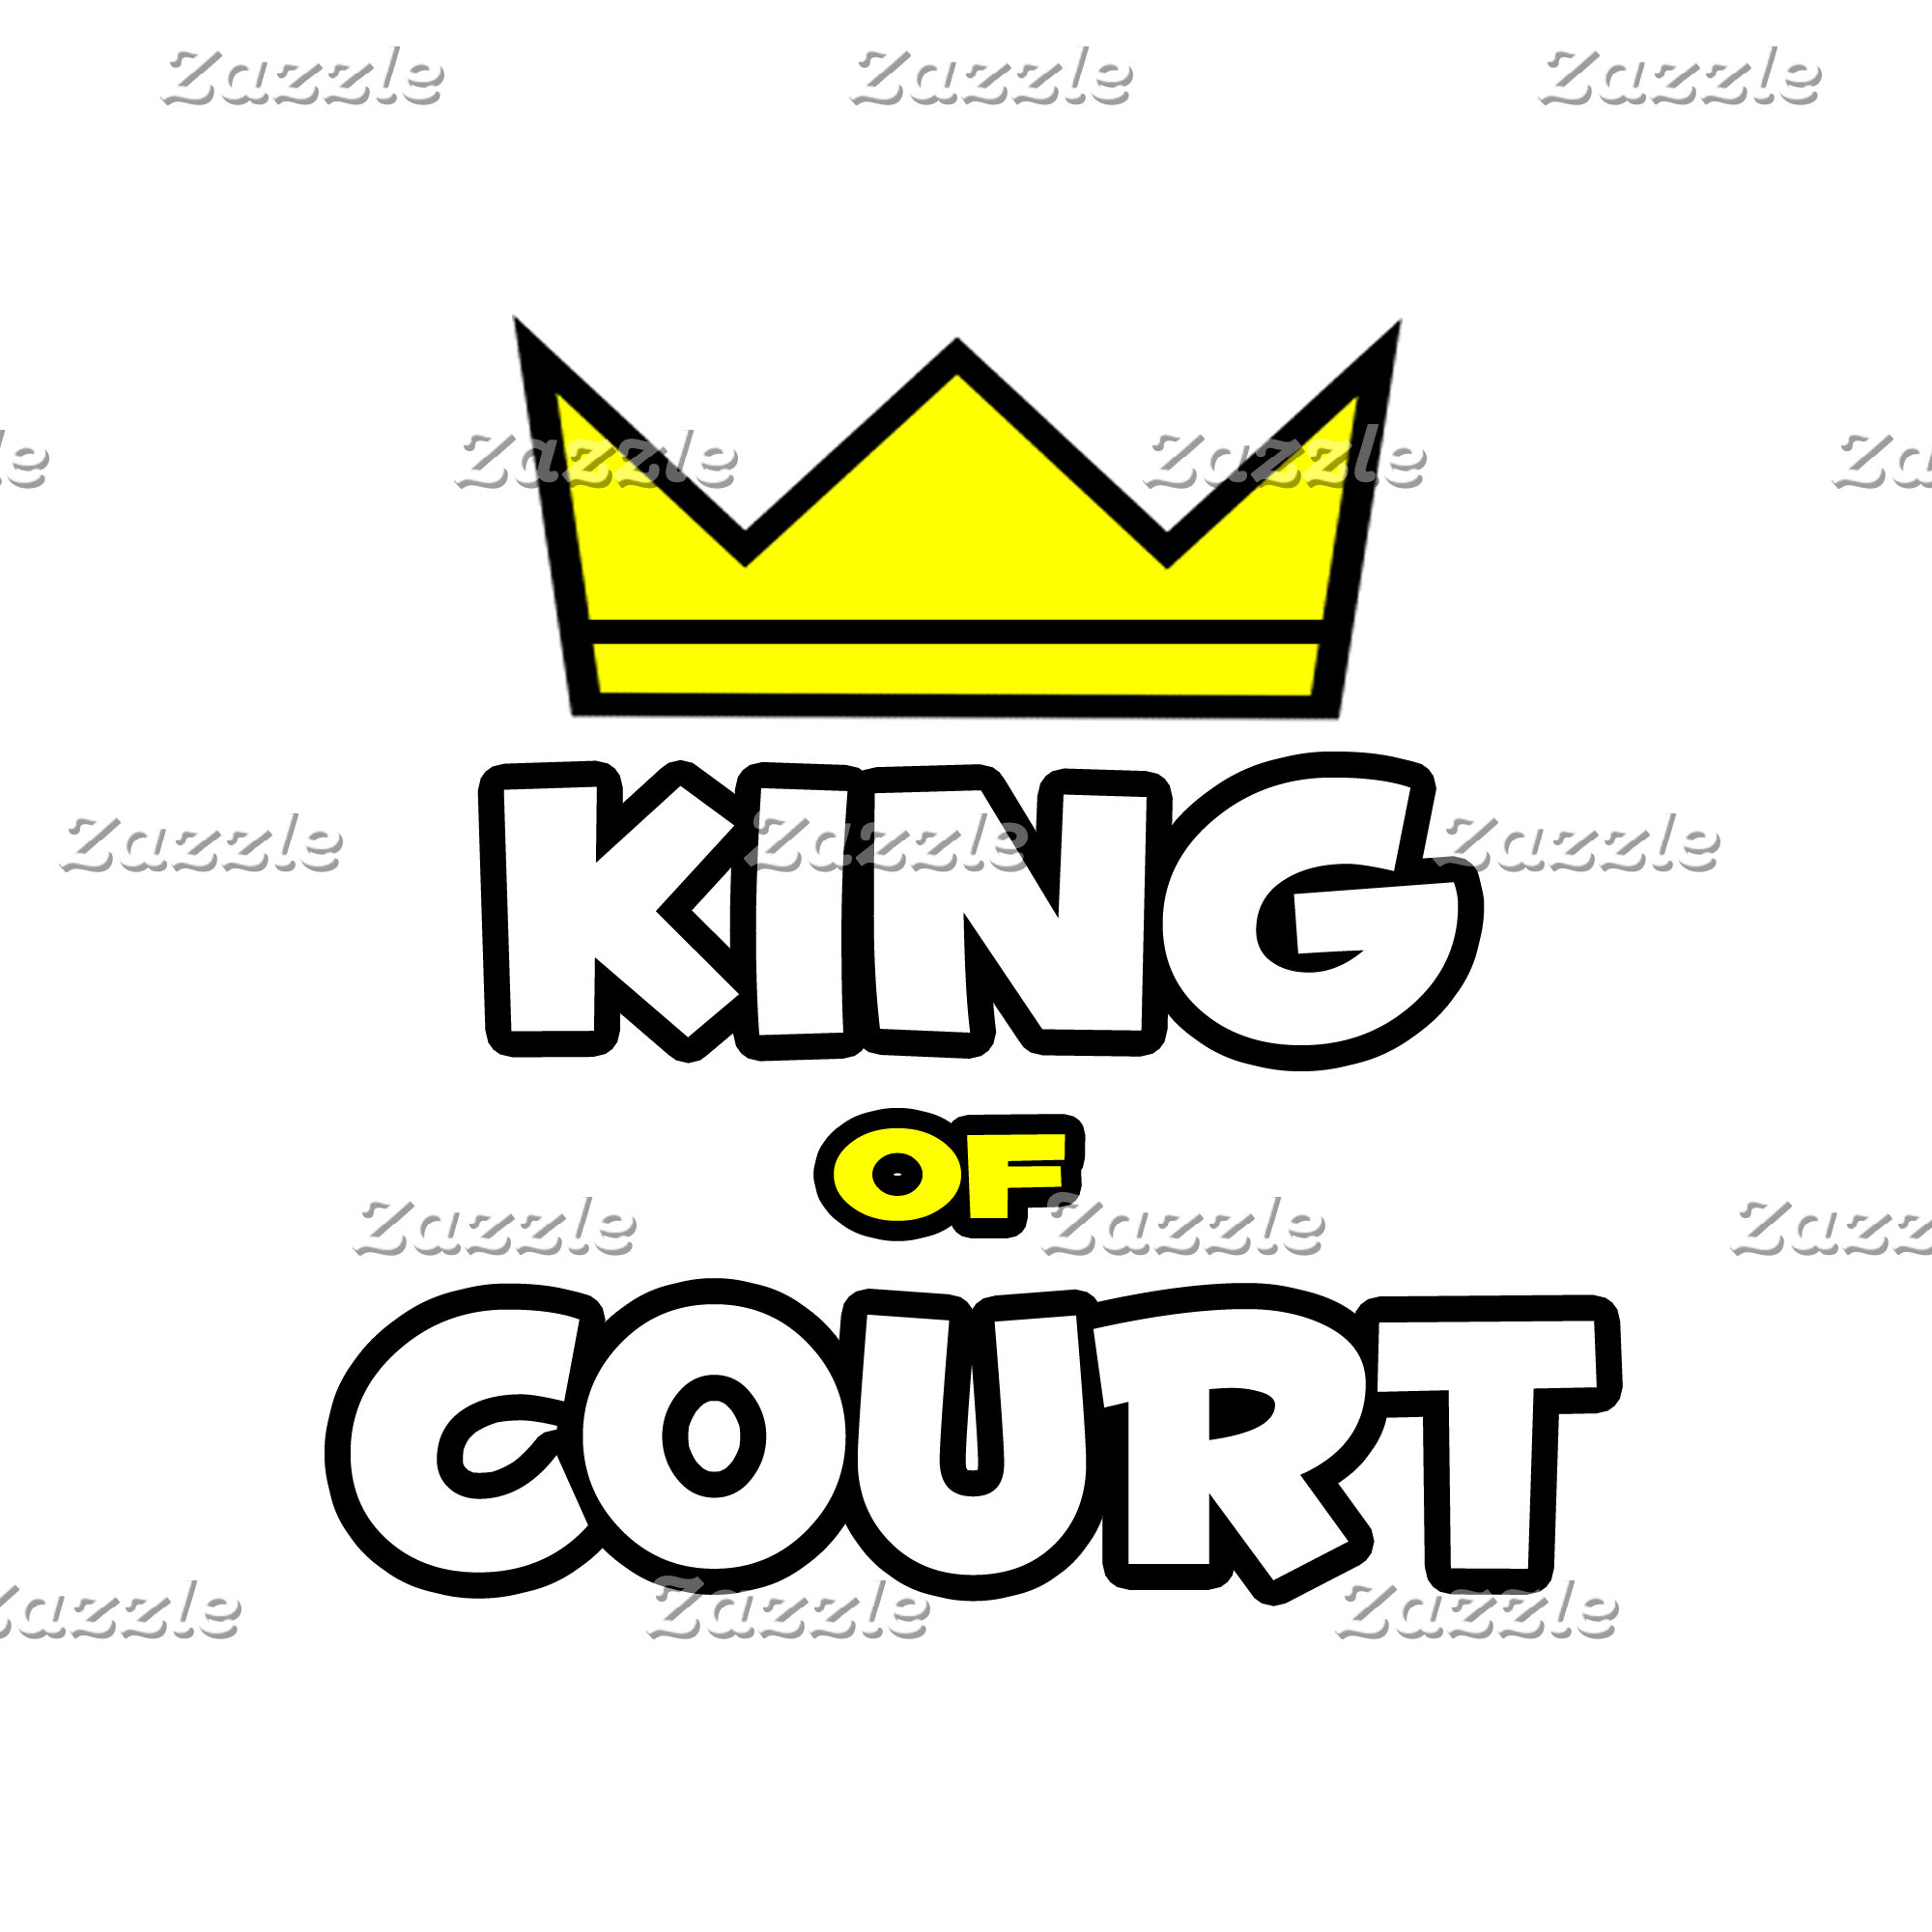 King of Court